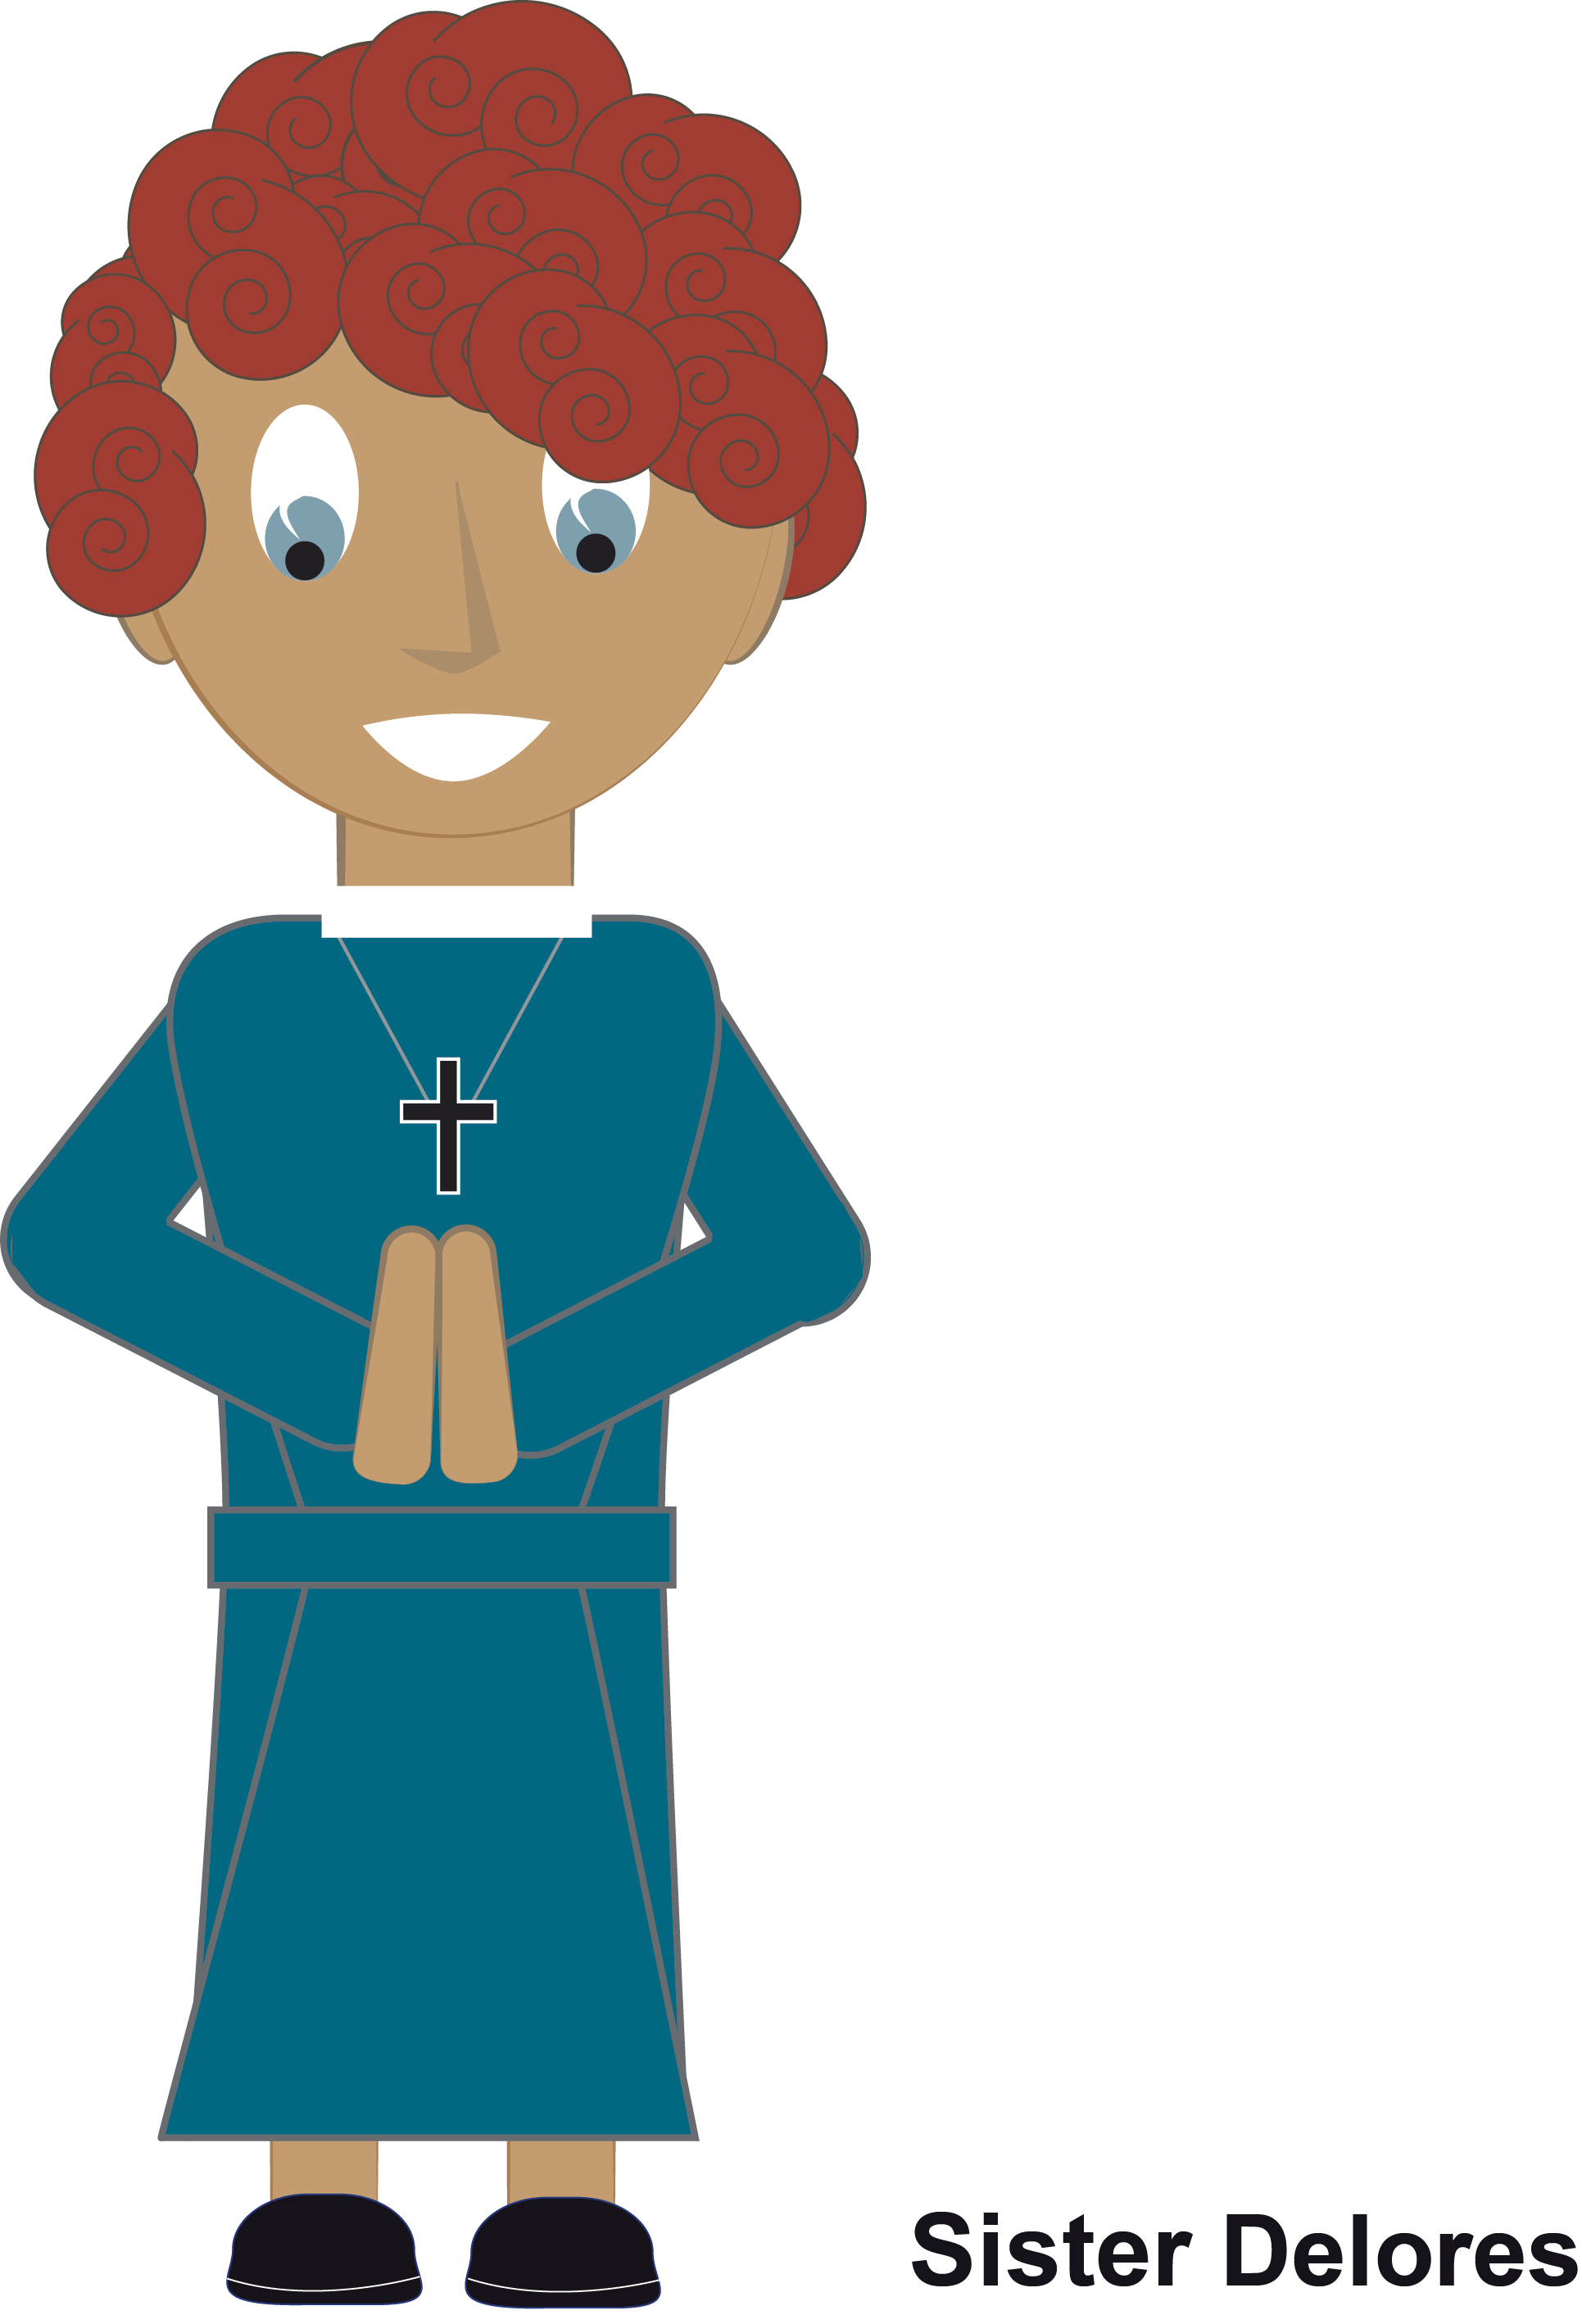 Missions clipart paper person. Year of vocations monthly